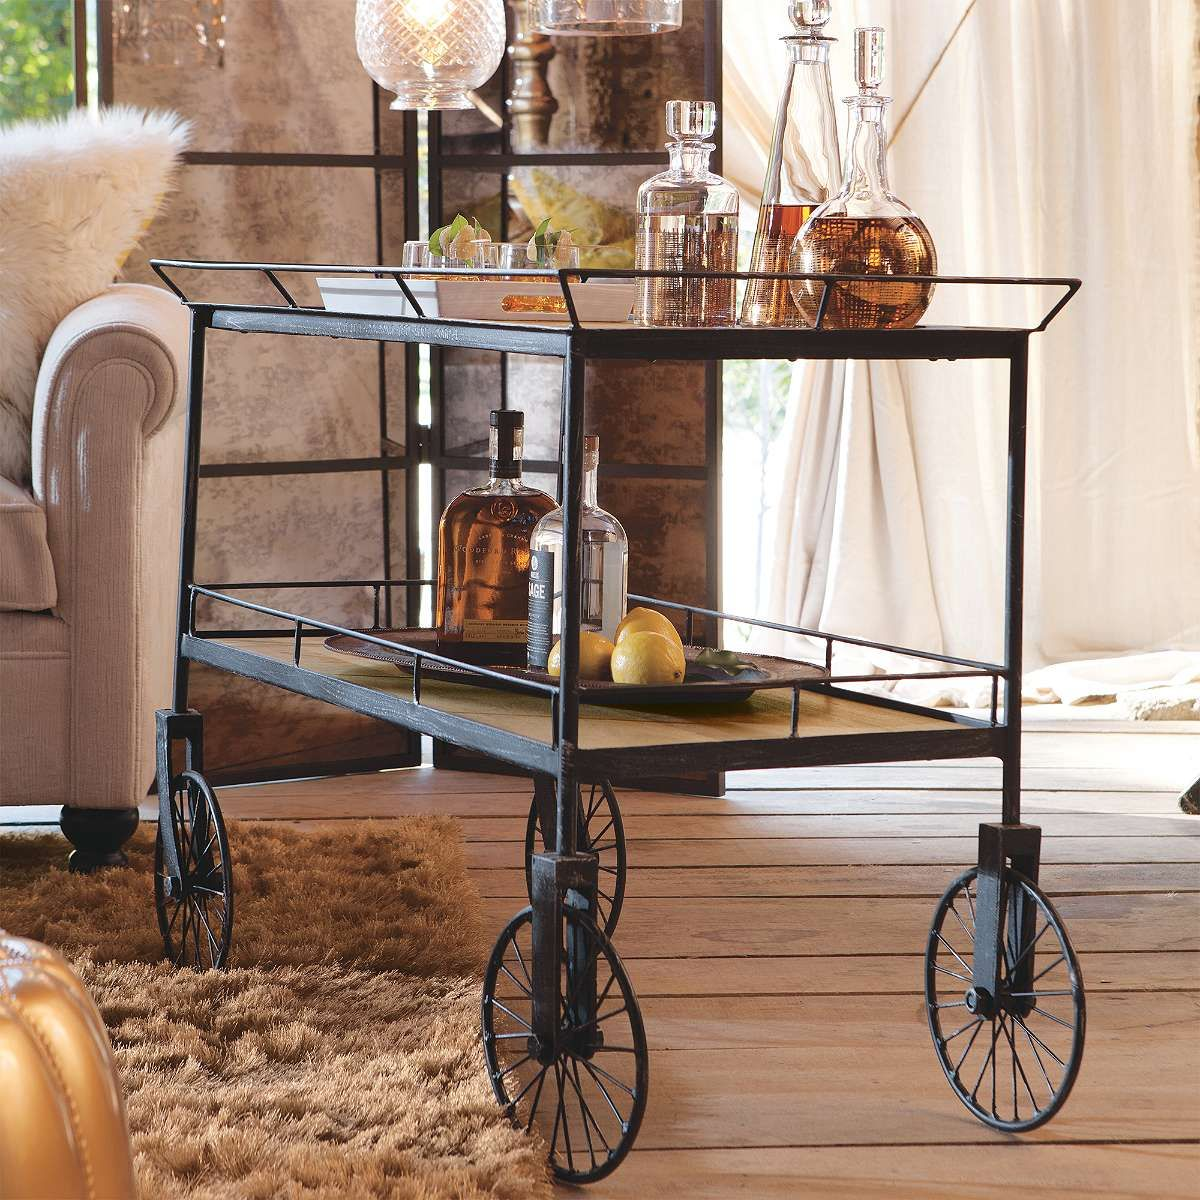 Trolley cart table david bromstad home at grandin road global trolley cart table david bromstad home at grandin road geotapseo Choice Image